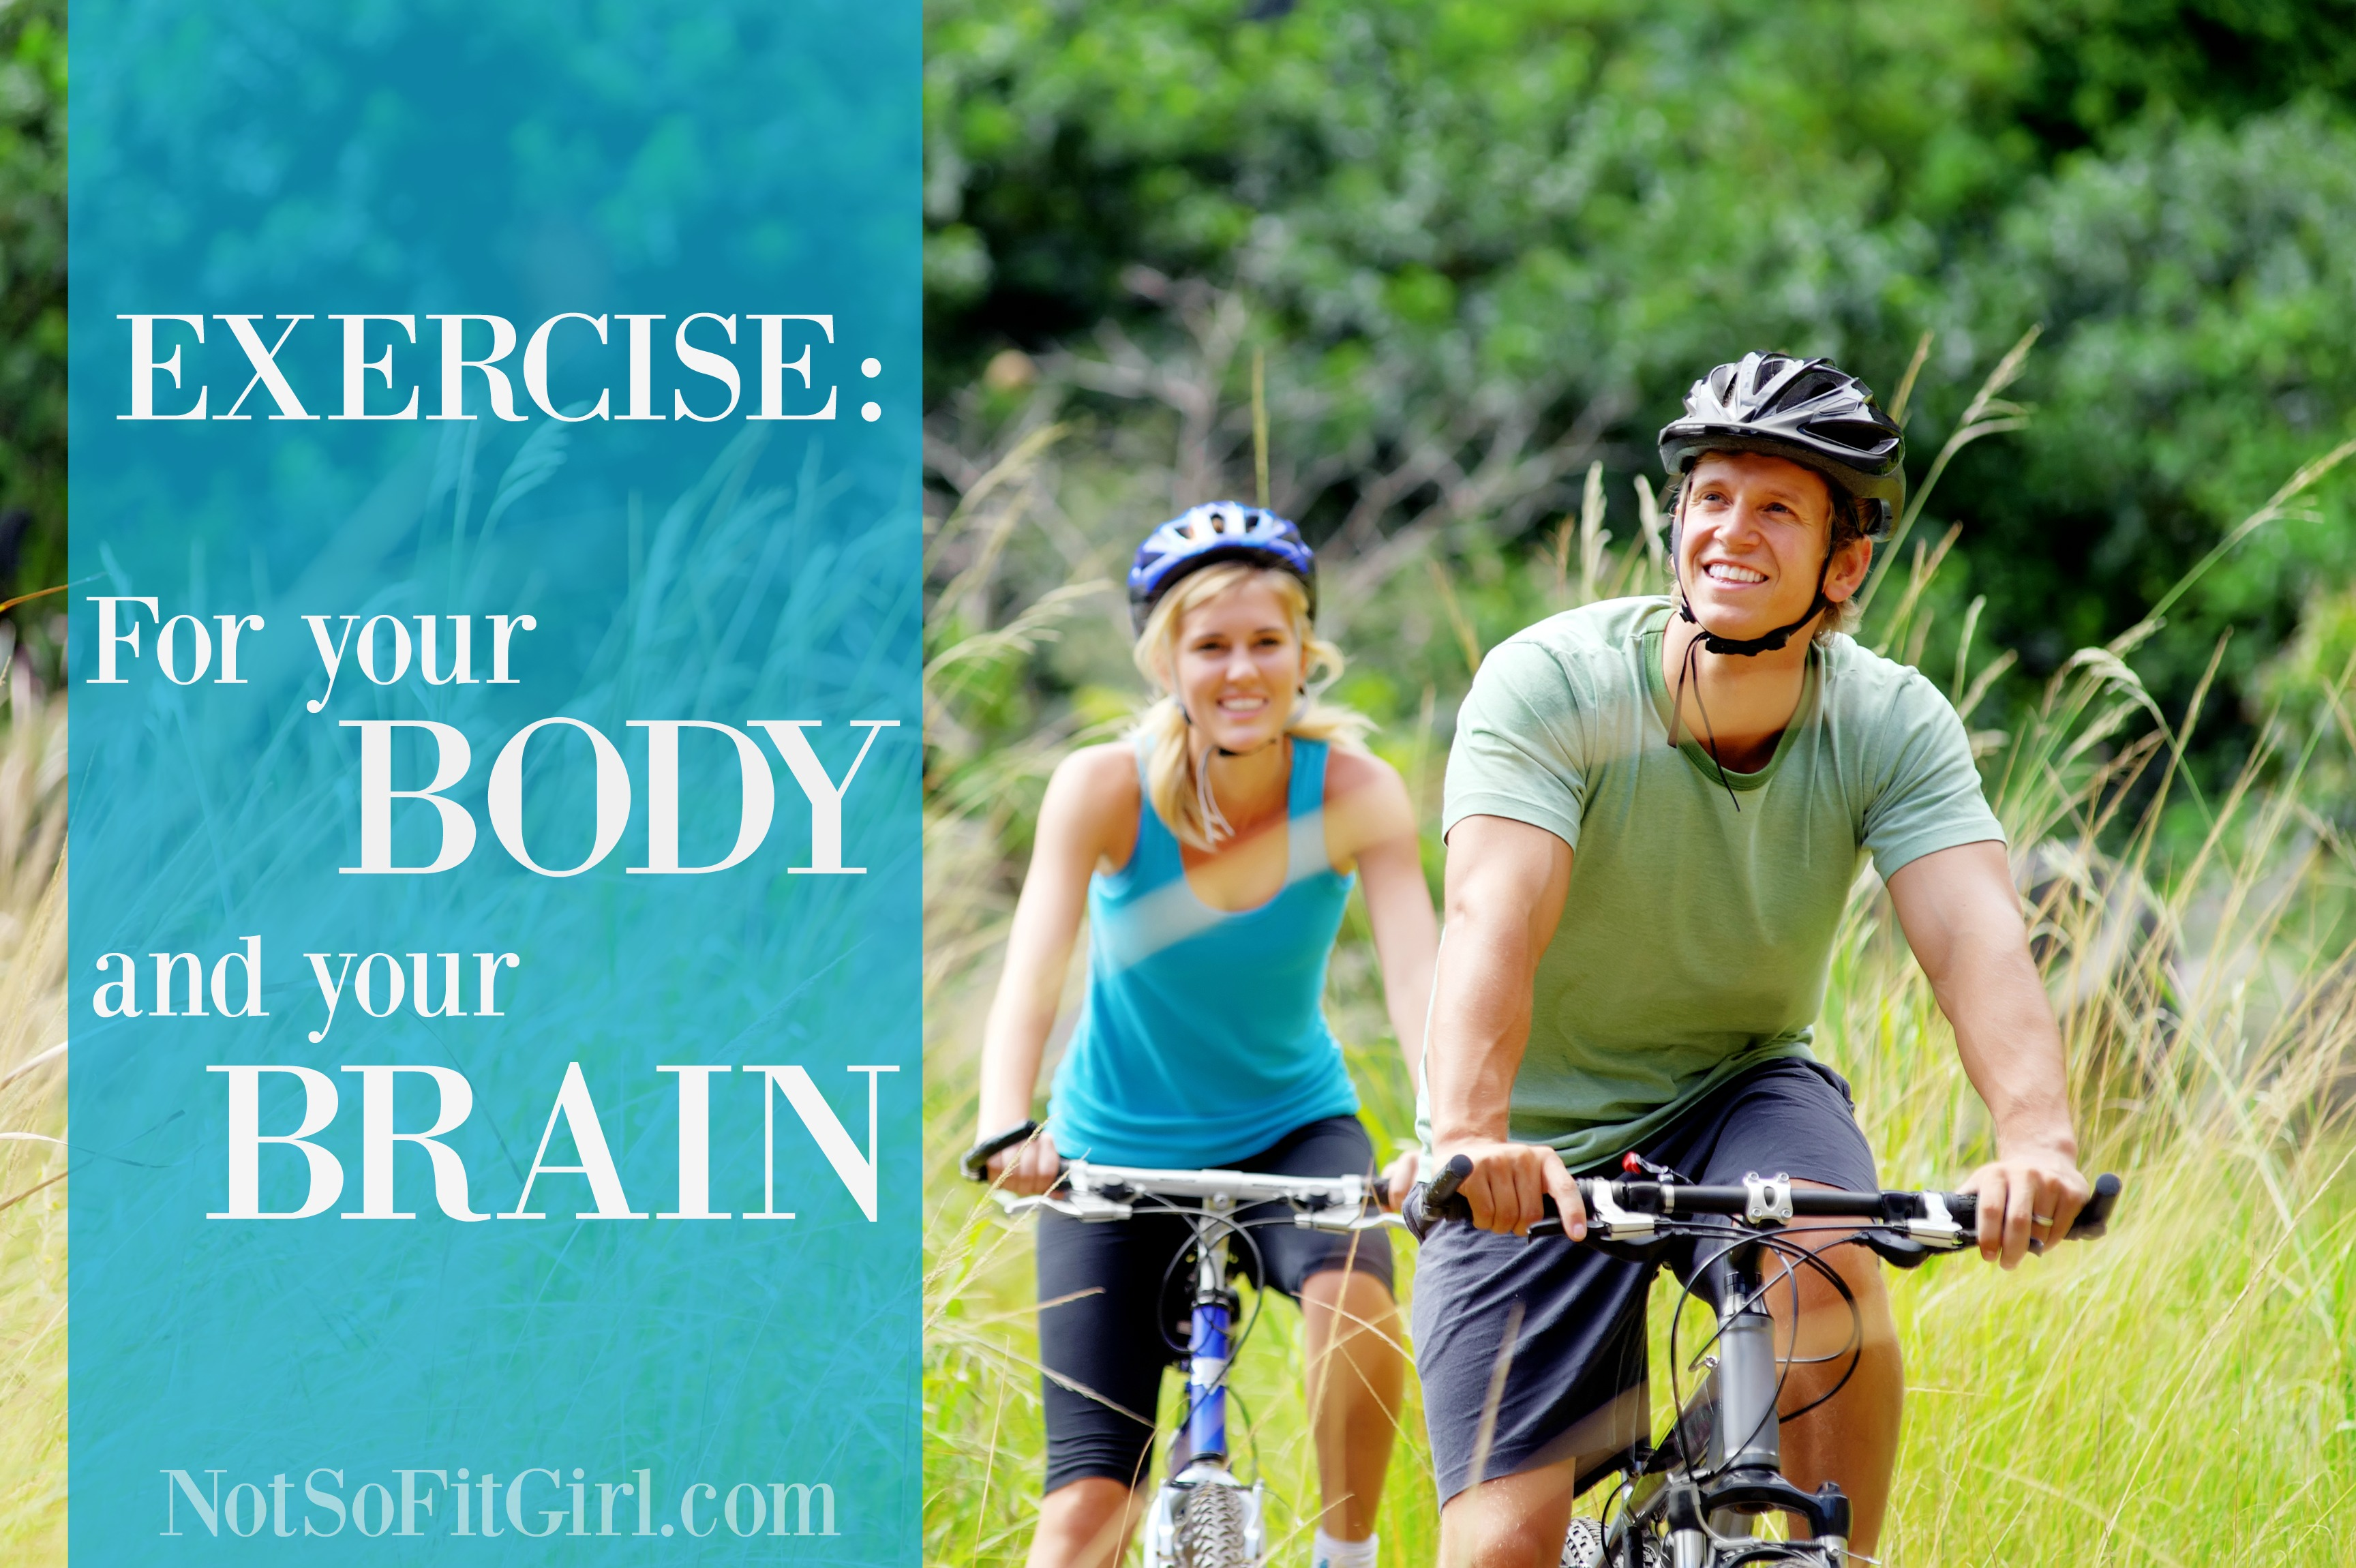 Exercise for your body and brain